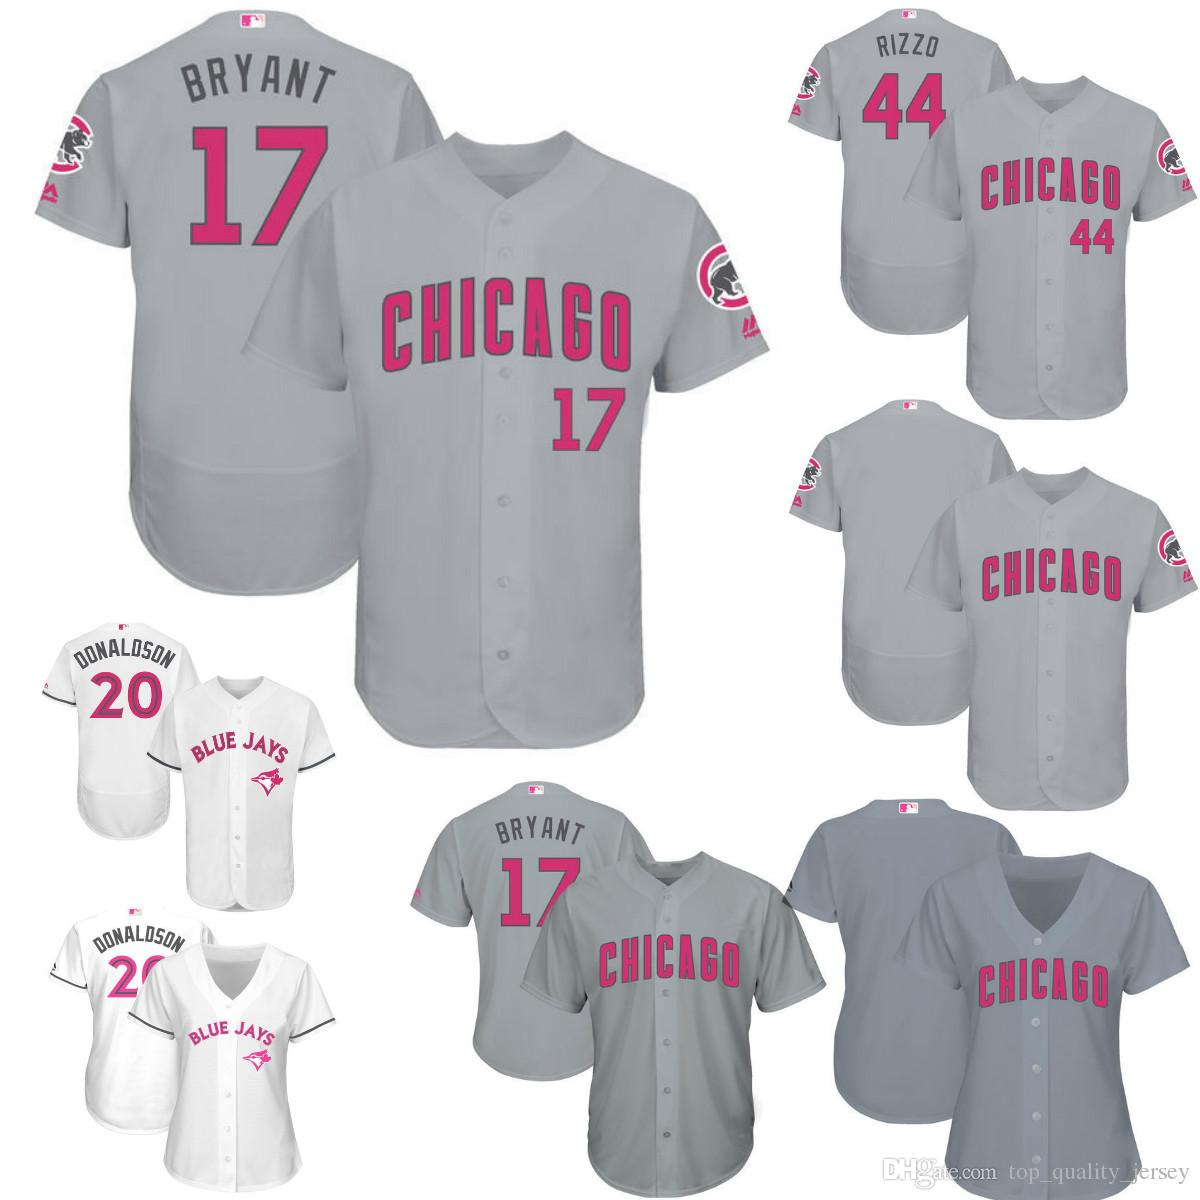 315977913b5 ... denmark 2017 custom mens womens youth chicago cubs mothers day baseball  jersey 17 kris bryant jersey